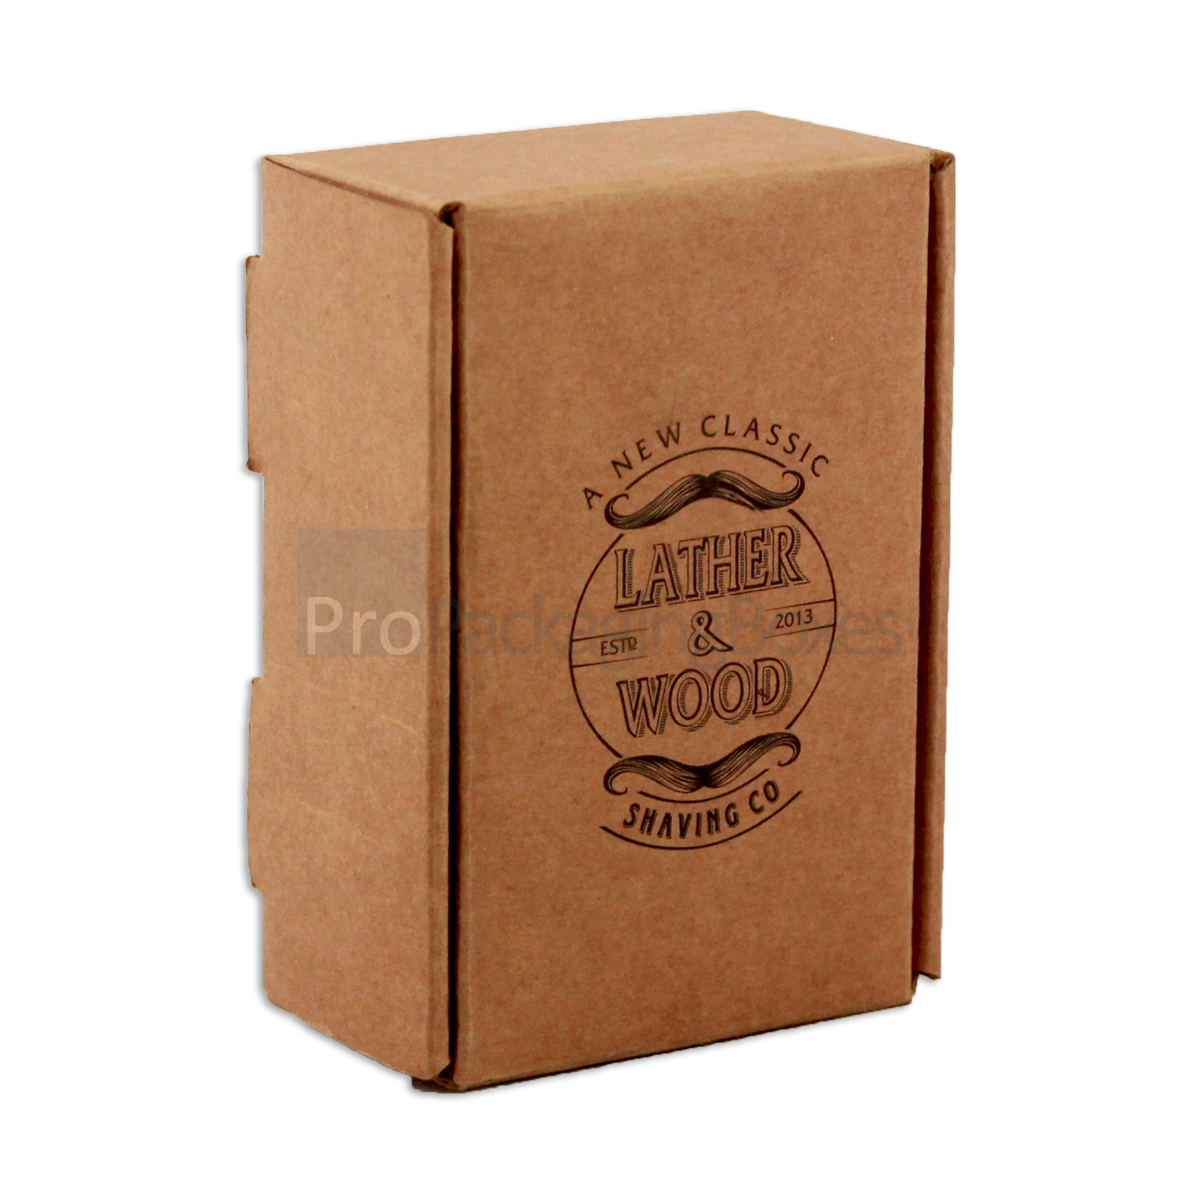 Custom Printed Soap Packaging Boxes in corrugated stock